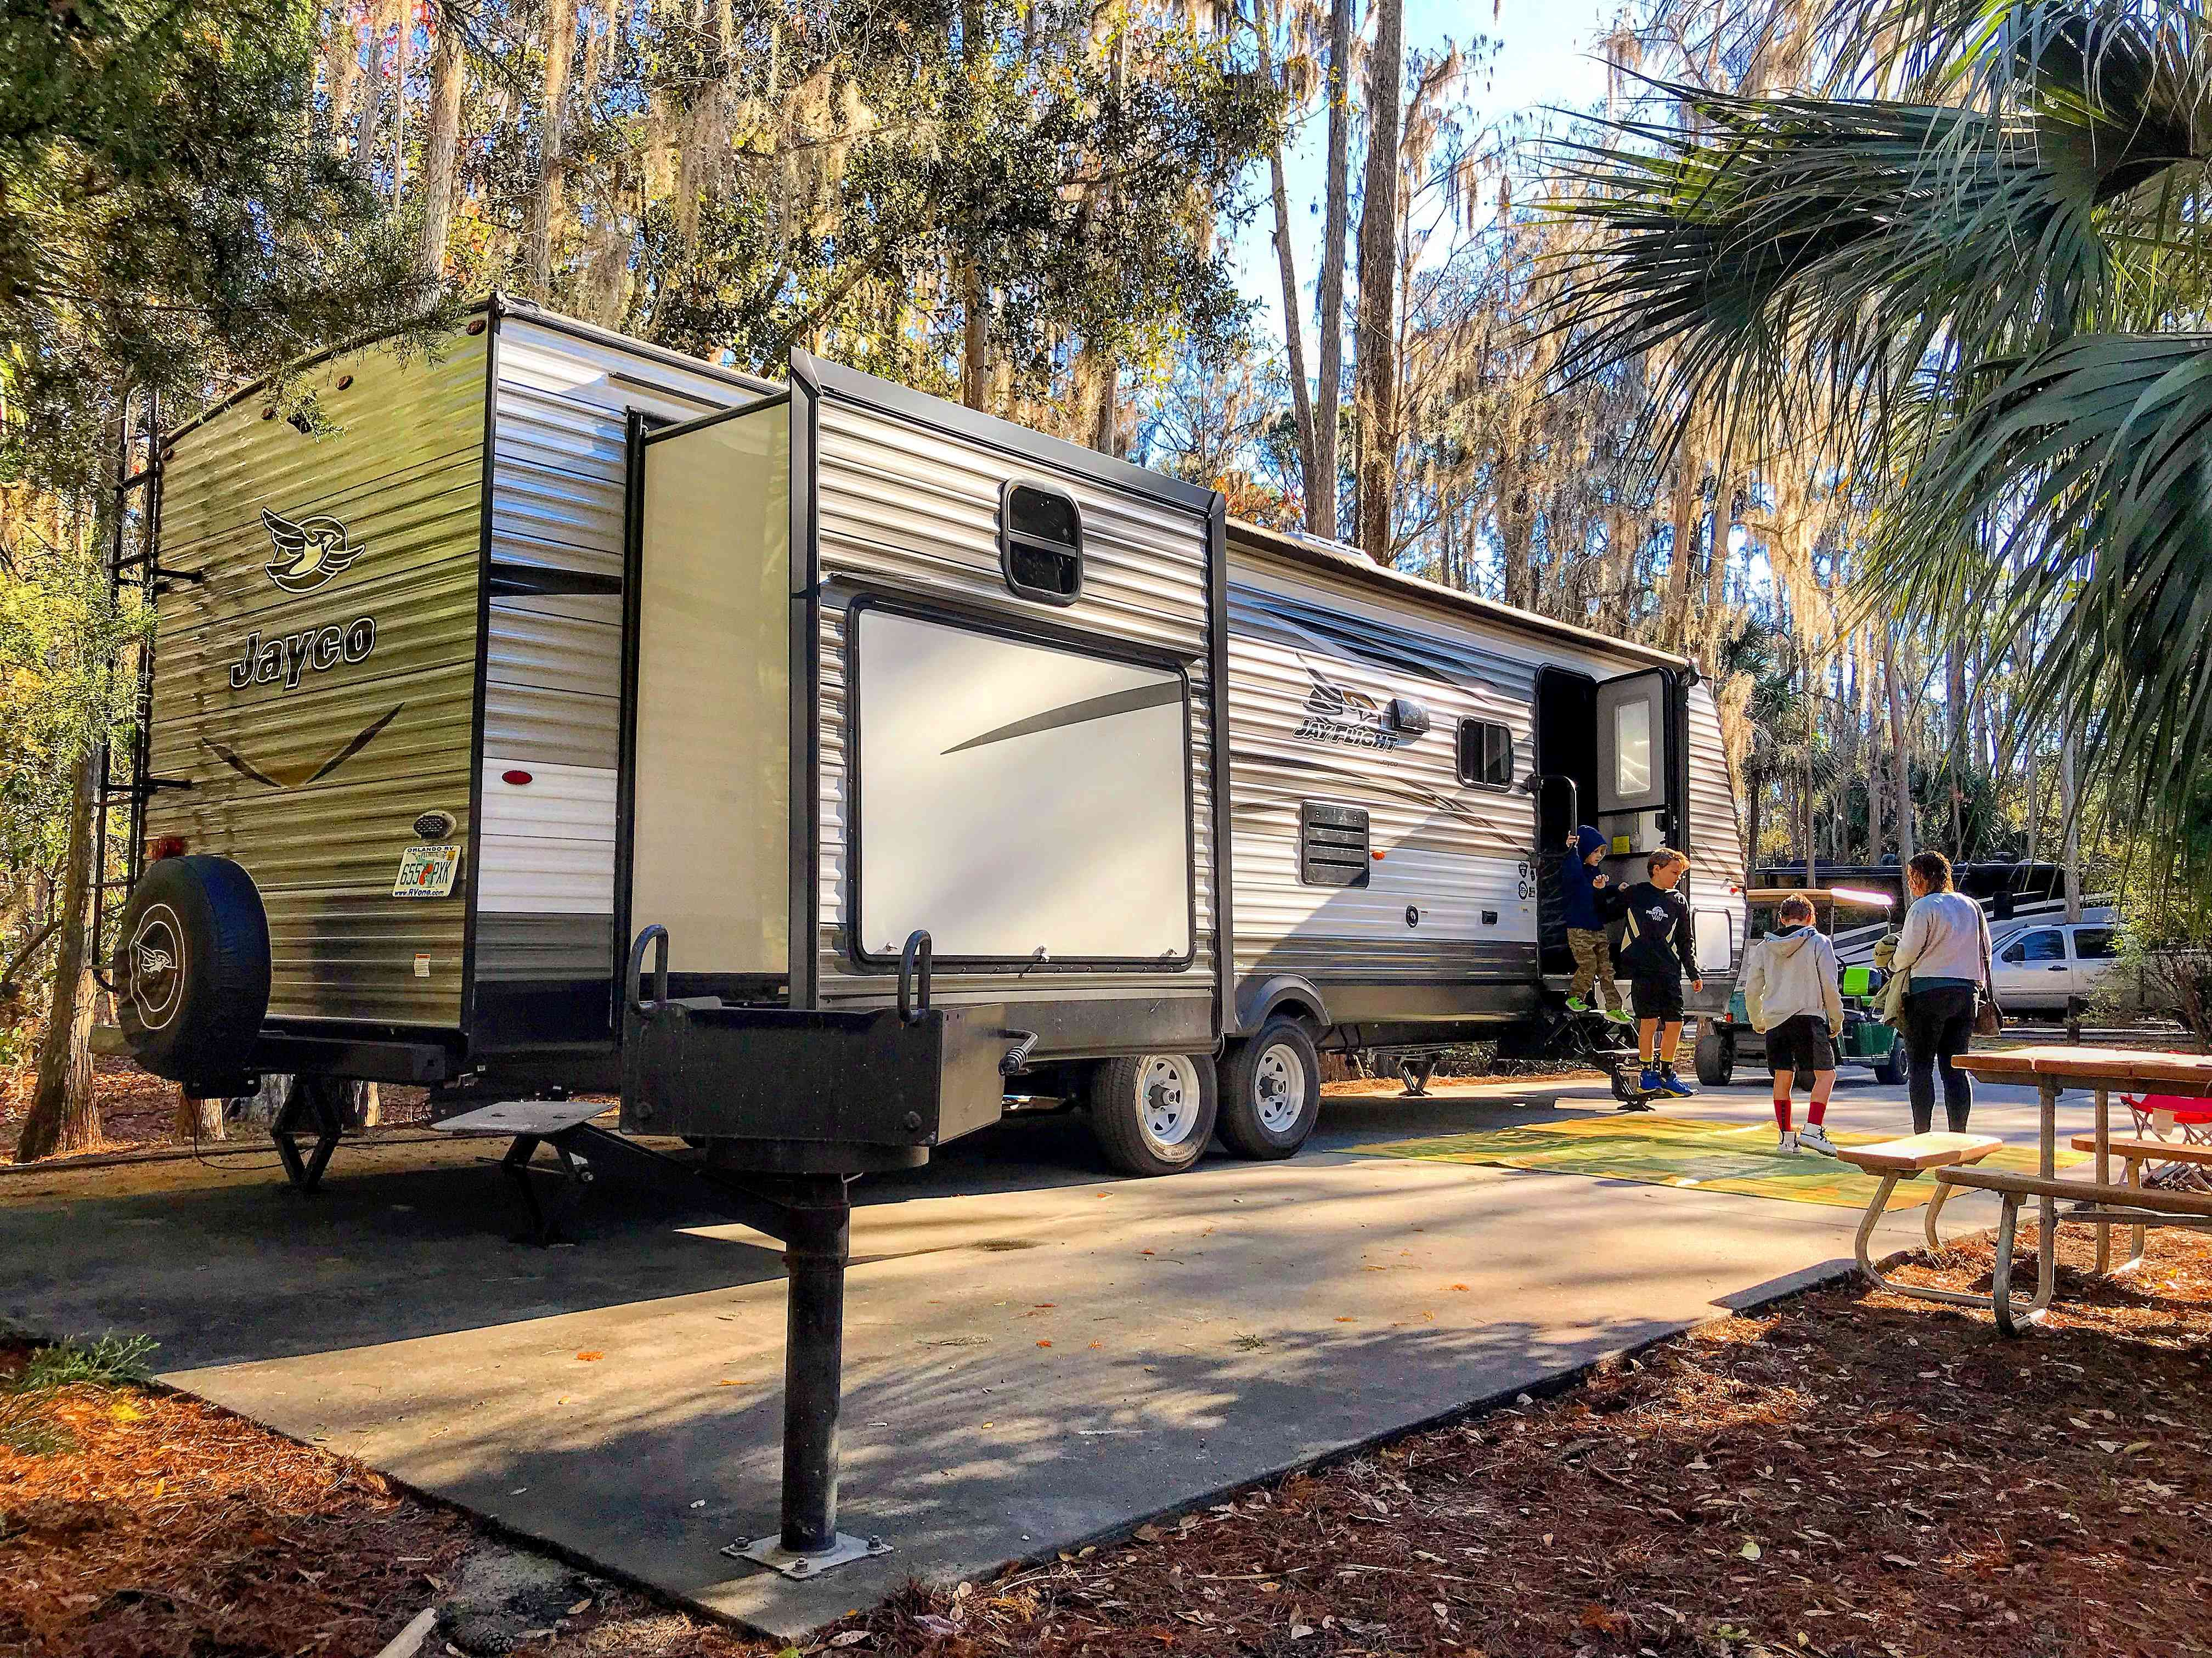 Travel Trailer at campground